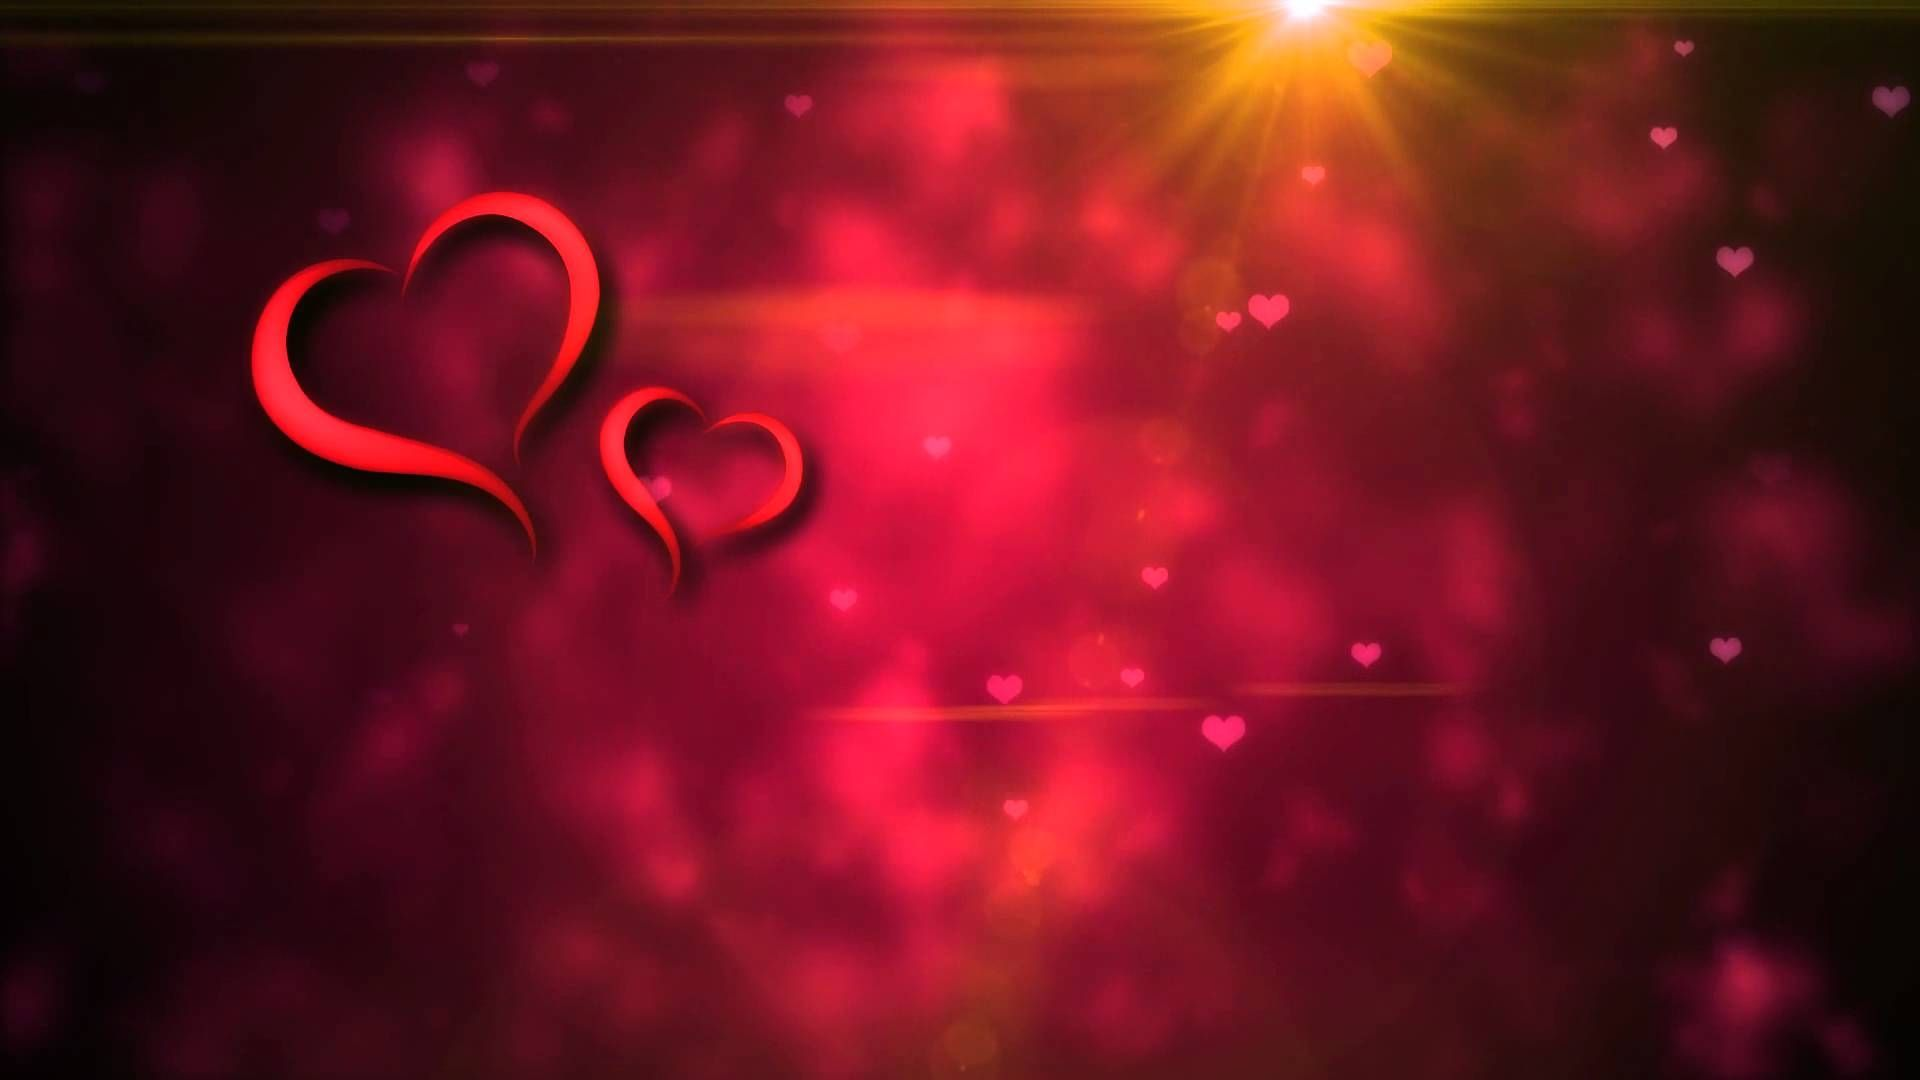 Love Wallpapers In Ultra Hd : marriage background images hd HD - Free Love Motion Background Loop 1080p Hd Wedding Loop For ...